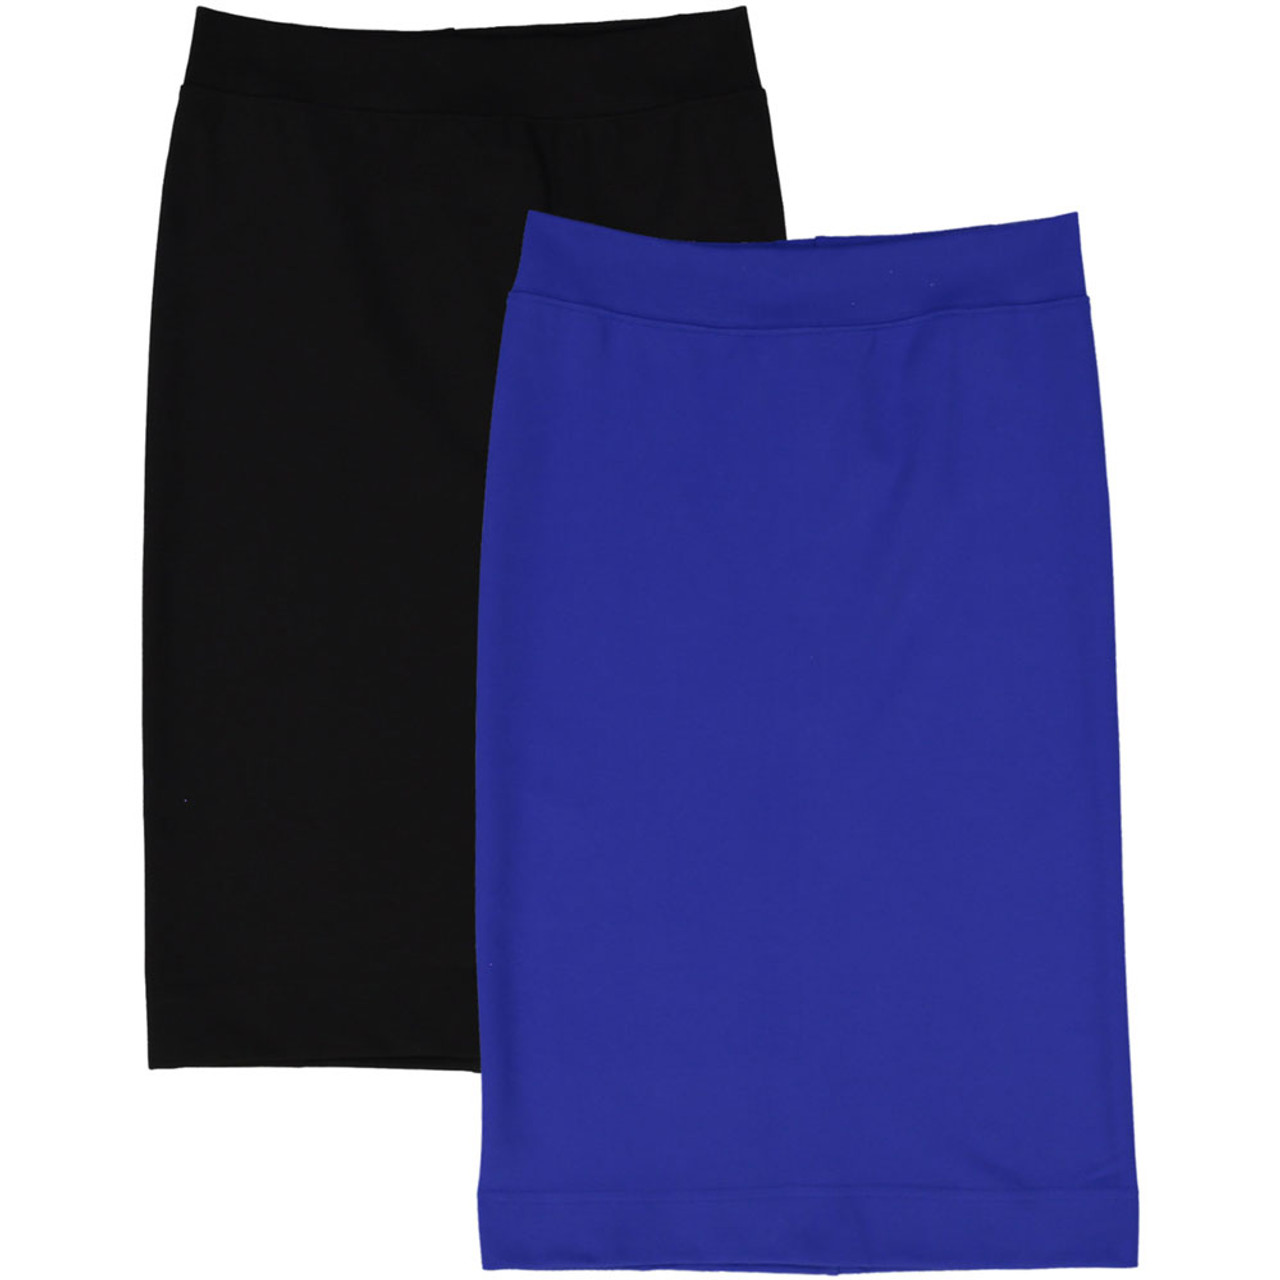 Kiki Riki New Ladies Pencil Skirt